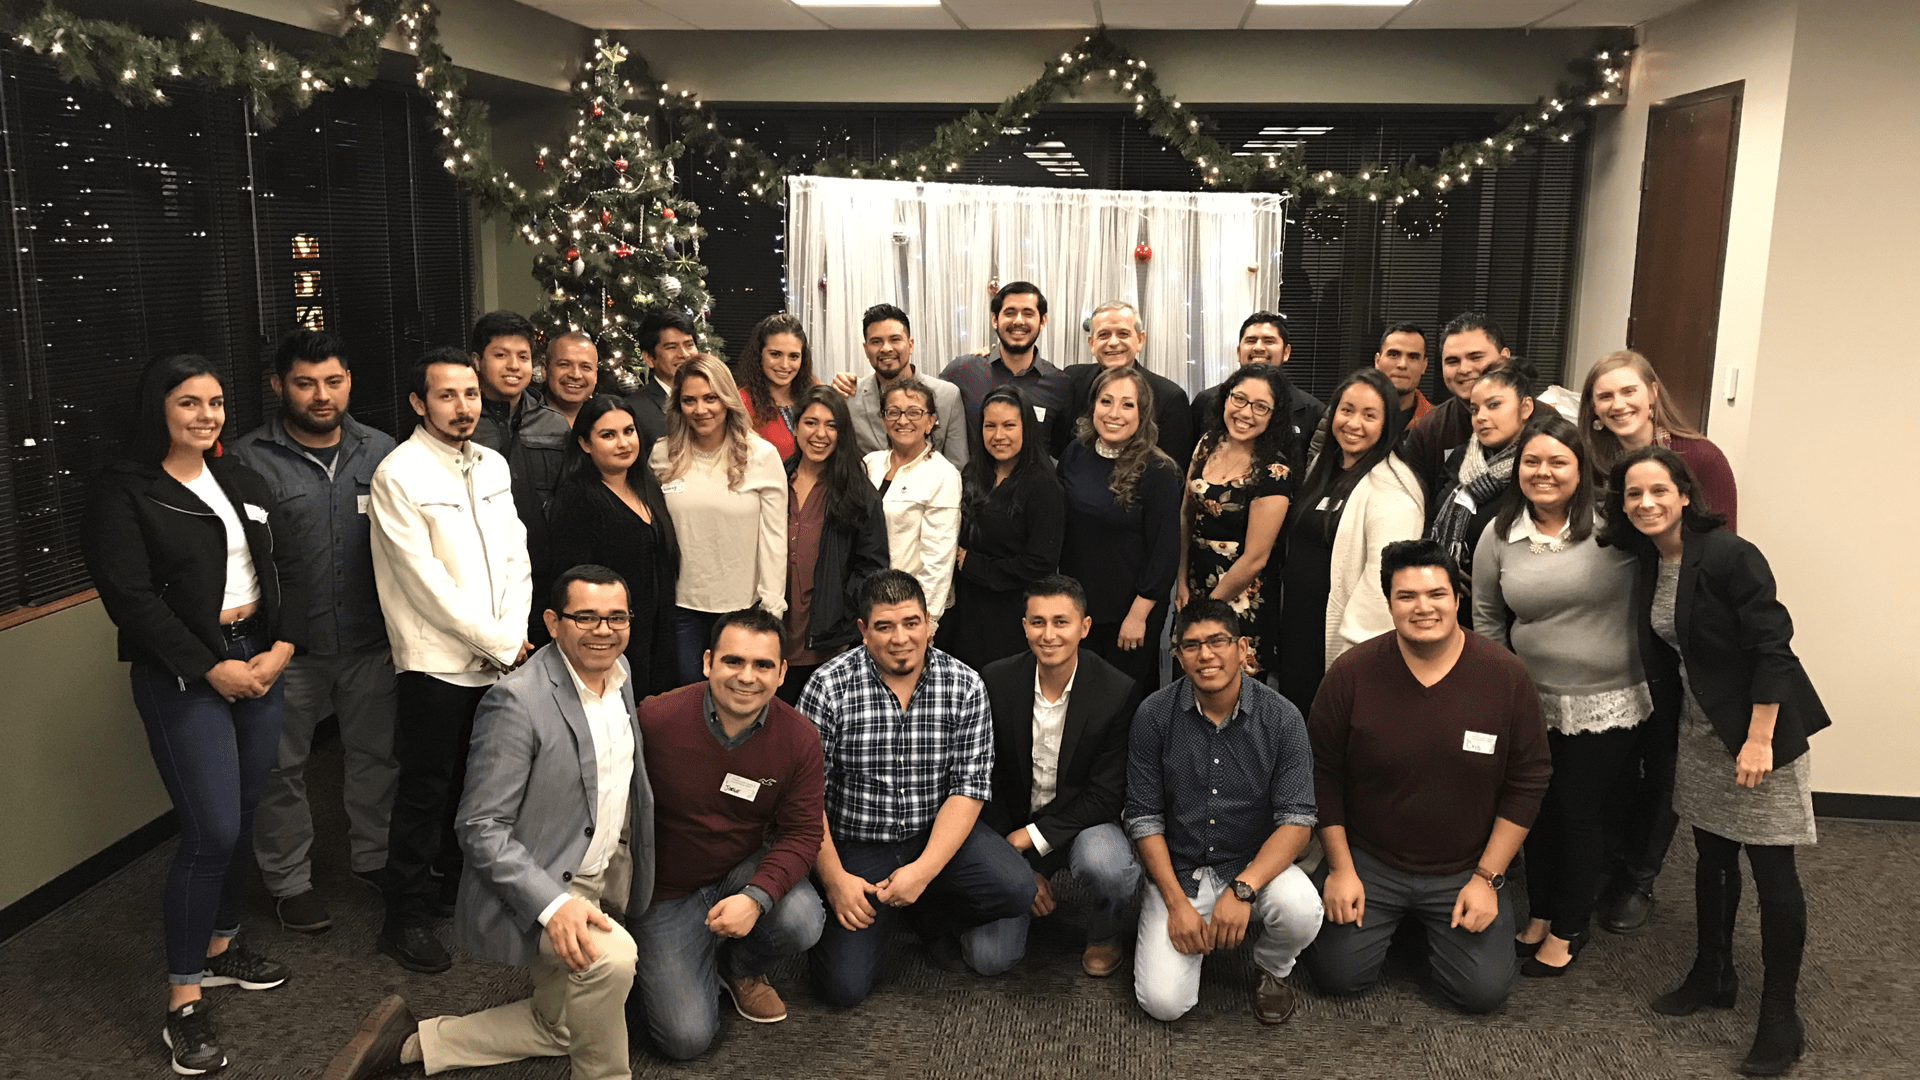 red de pastoral juvenil at christmas party